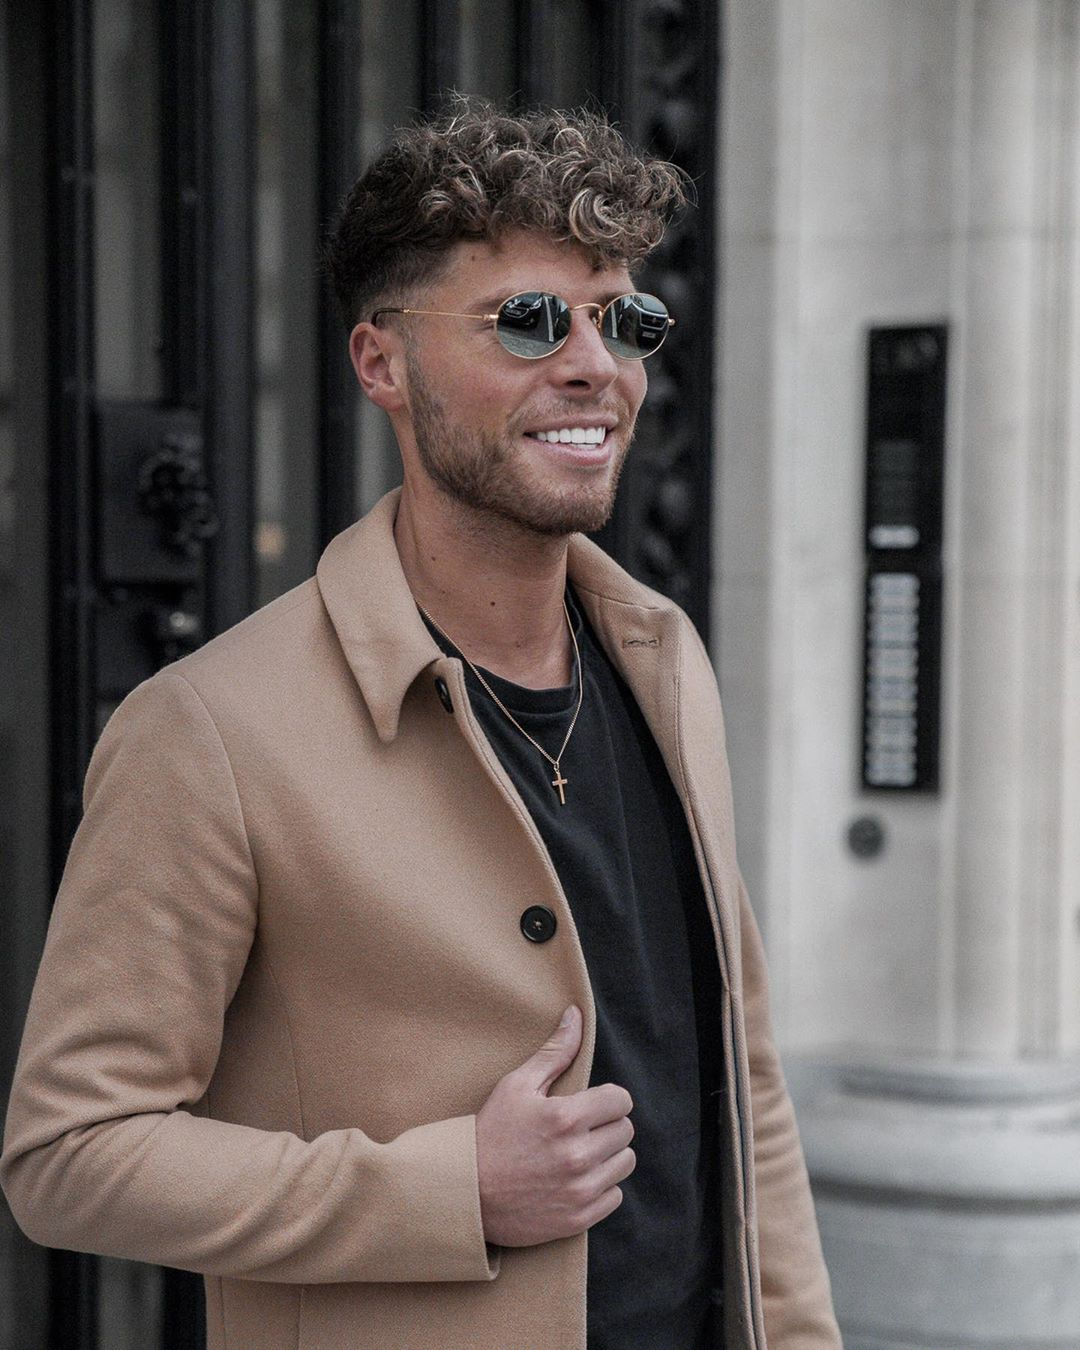 Those Ray Ban are the perfect match to my autumn outfit to enjoy the sunny days left in this end of October  @lentiamo check them them out to know when are their next fashion Fridays--------------------#fashionfridays #lentiamo #rayban #ad #mensfashion #menswithclass #menswithstyle #casualstyle #sunglasses #smile #classy